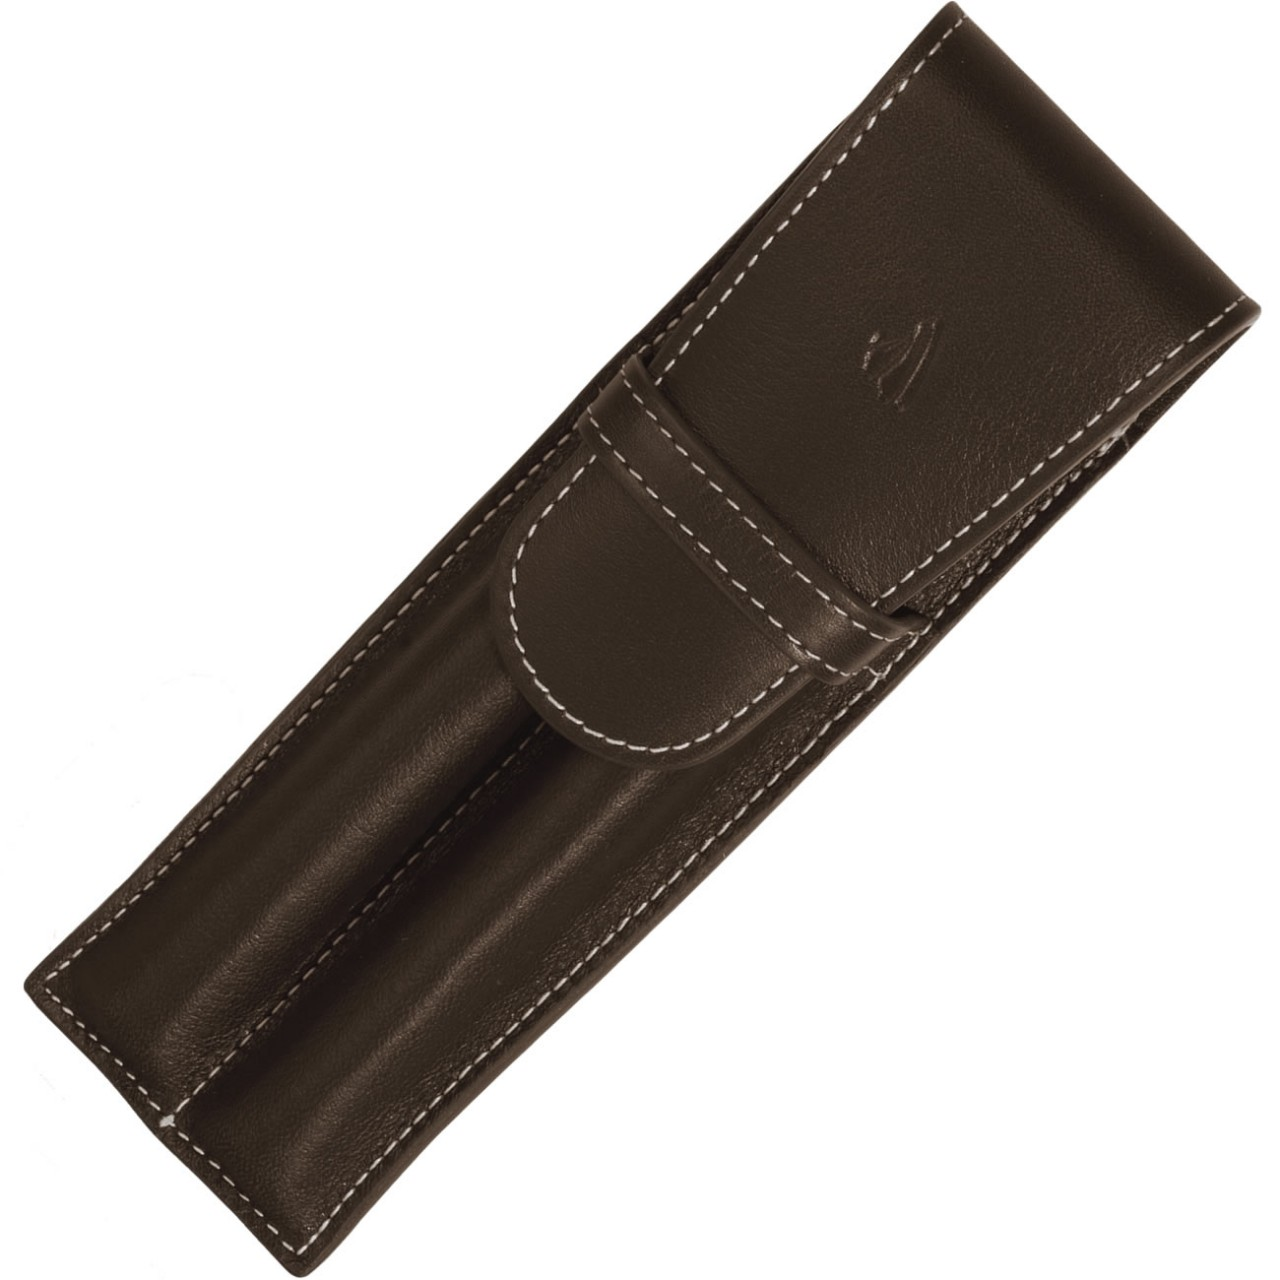 LARGE SOFT PEN POUCH W/FLAP 2P * RIVIERA CHOCOLATE